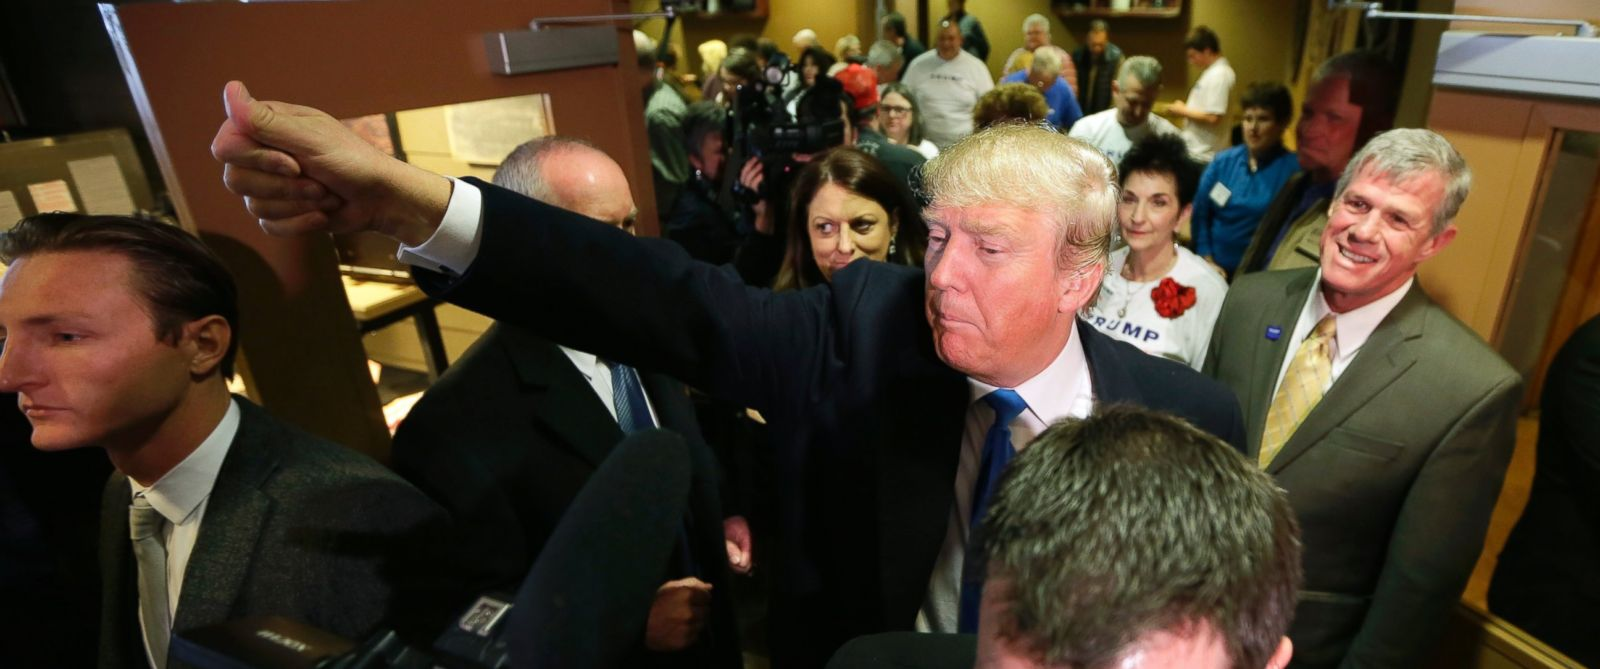 PHOTO: Donald Trump waves to supporters after meeting with volunteers at the local Pizza Ranch restaurant on Jan. 15, 2016, in Waukee, Iowa.